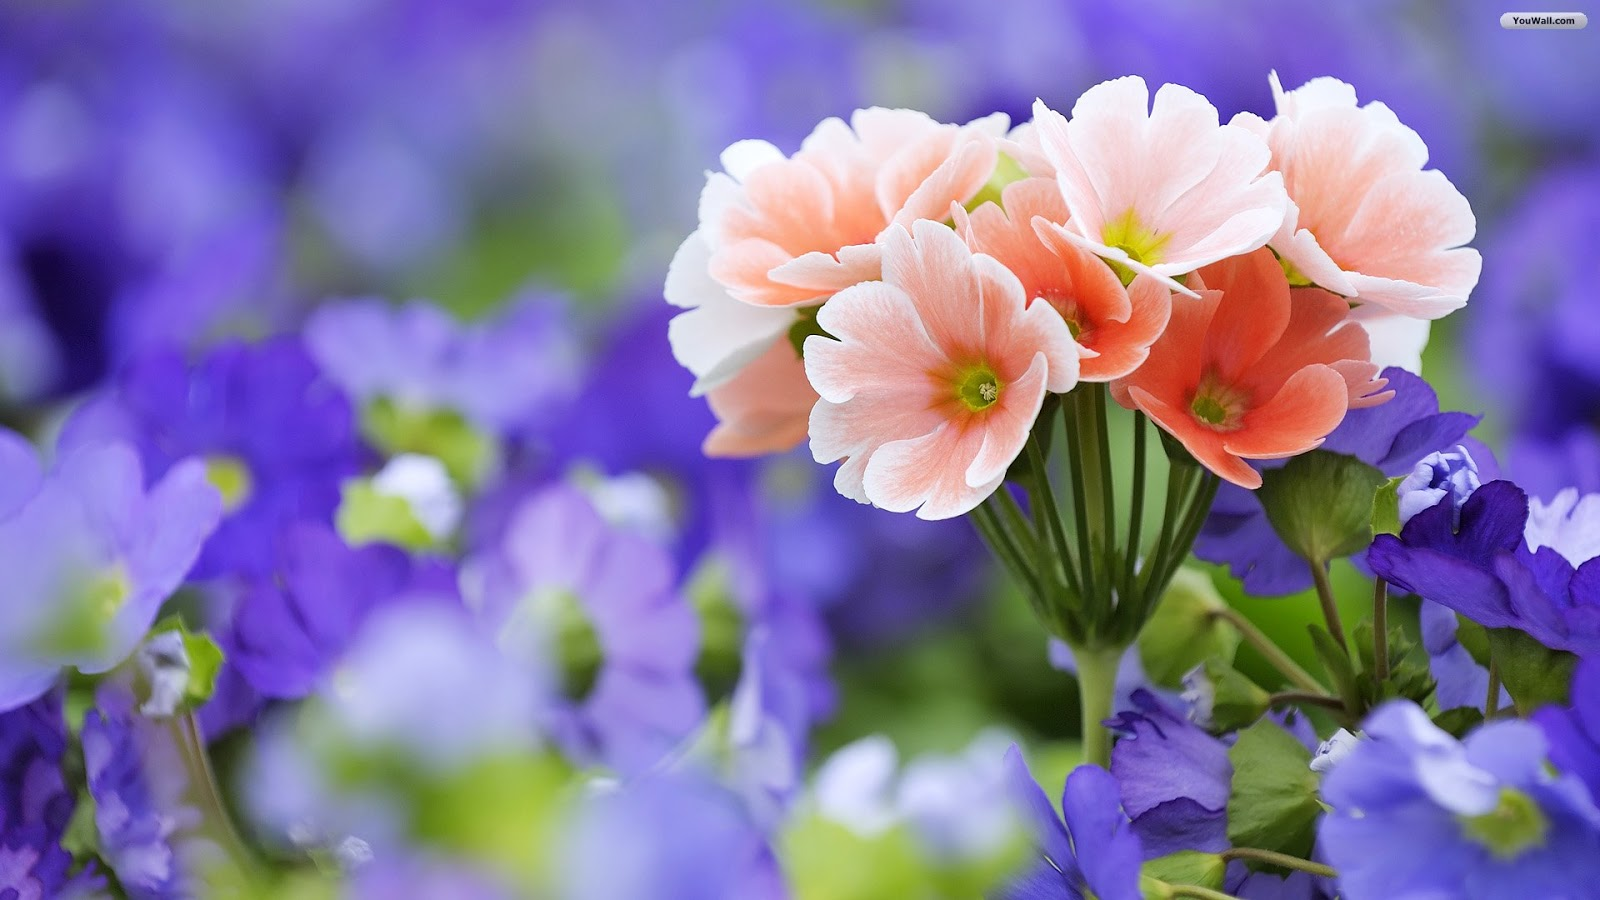 HD Flowers Wallpapers for Desktop - WallpaperSafari